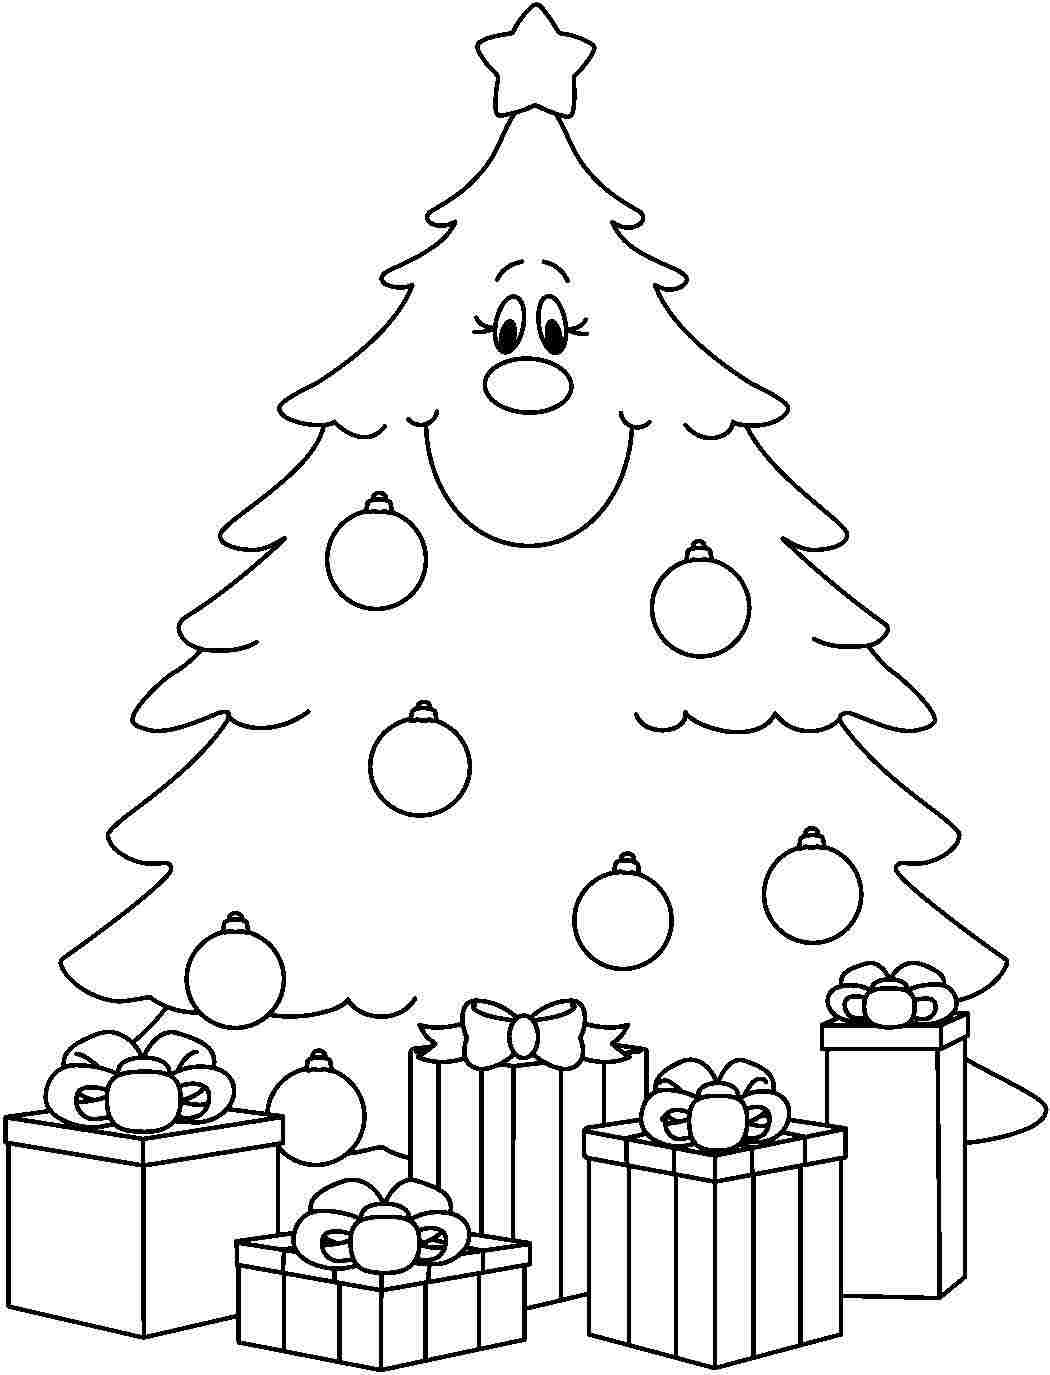 Christmas Xmas Tree Pictures To Draw Print For Preschool